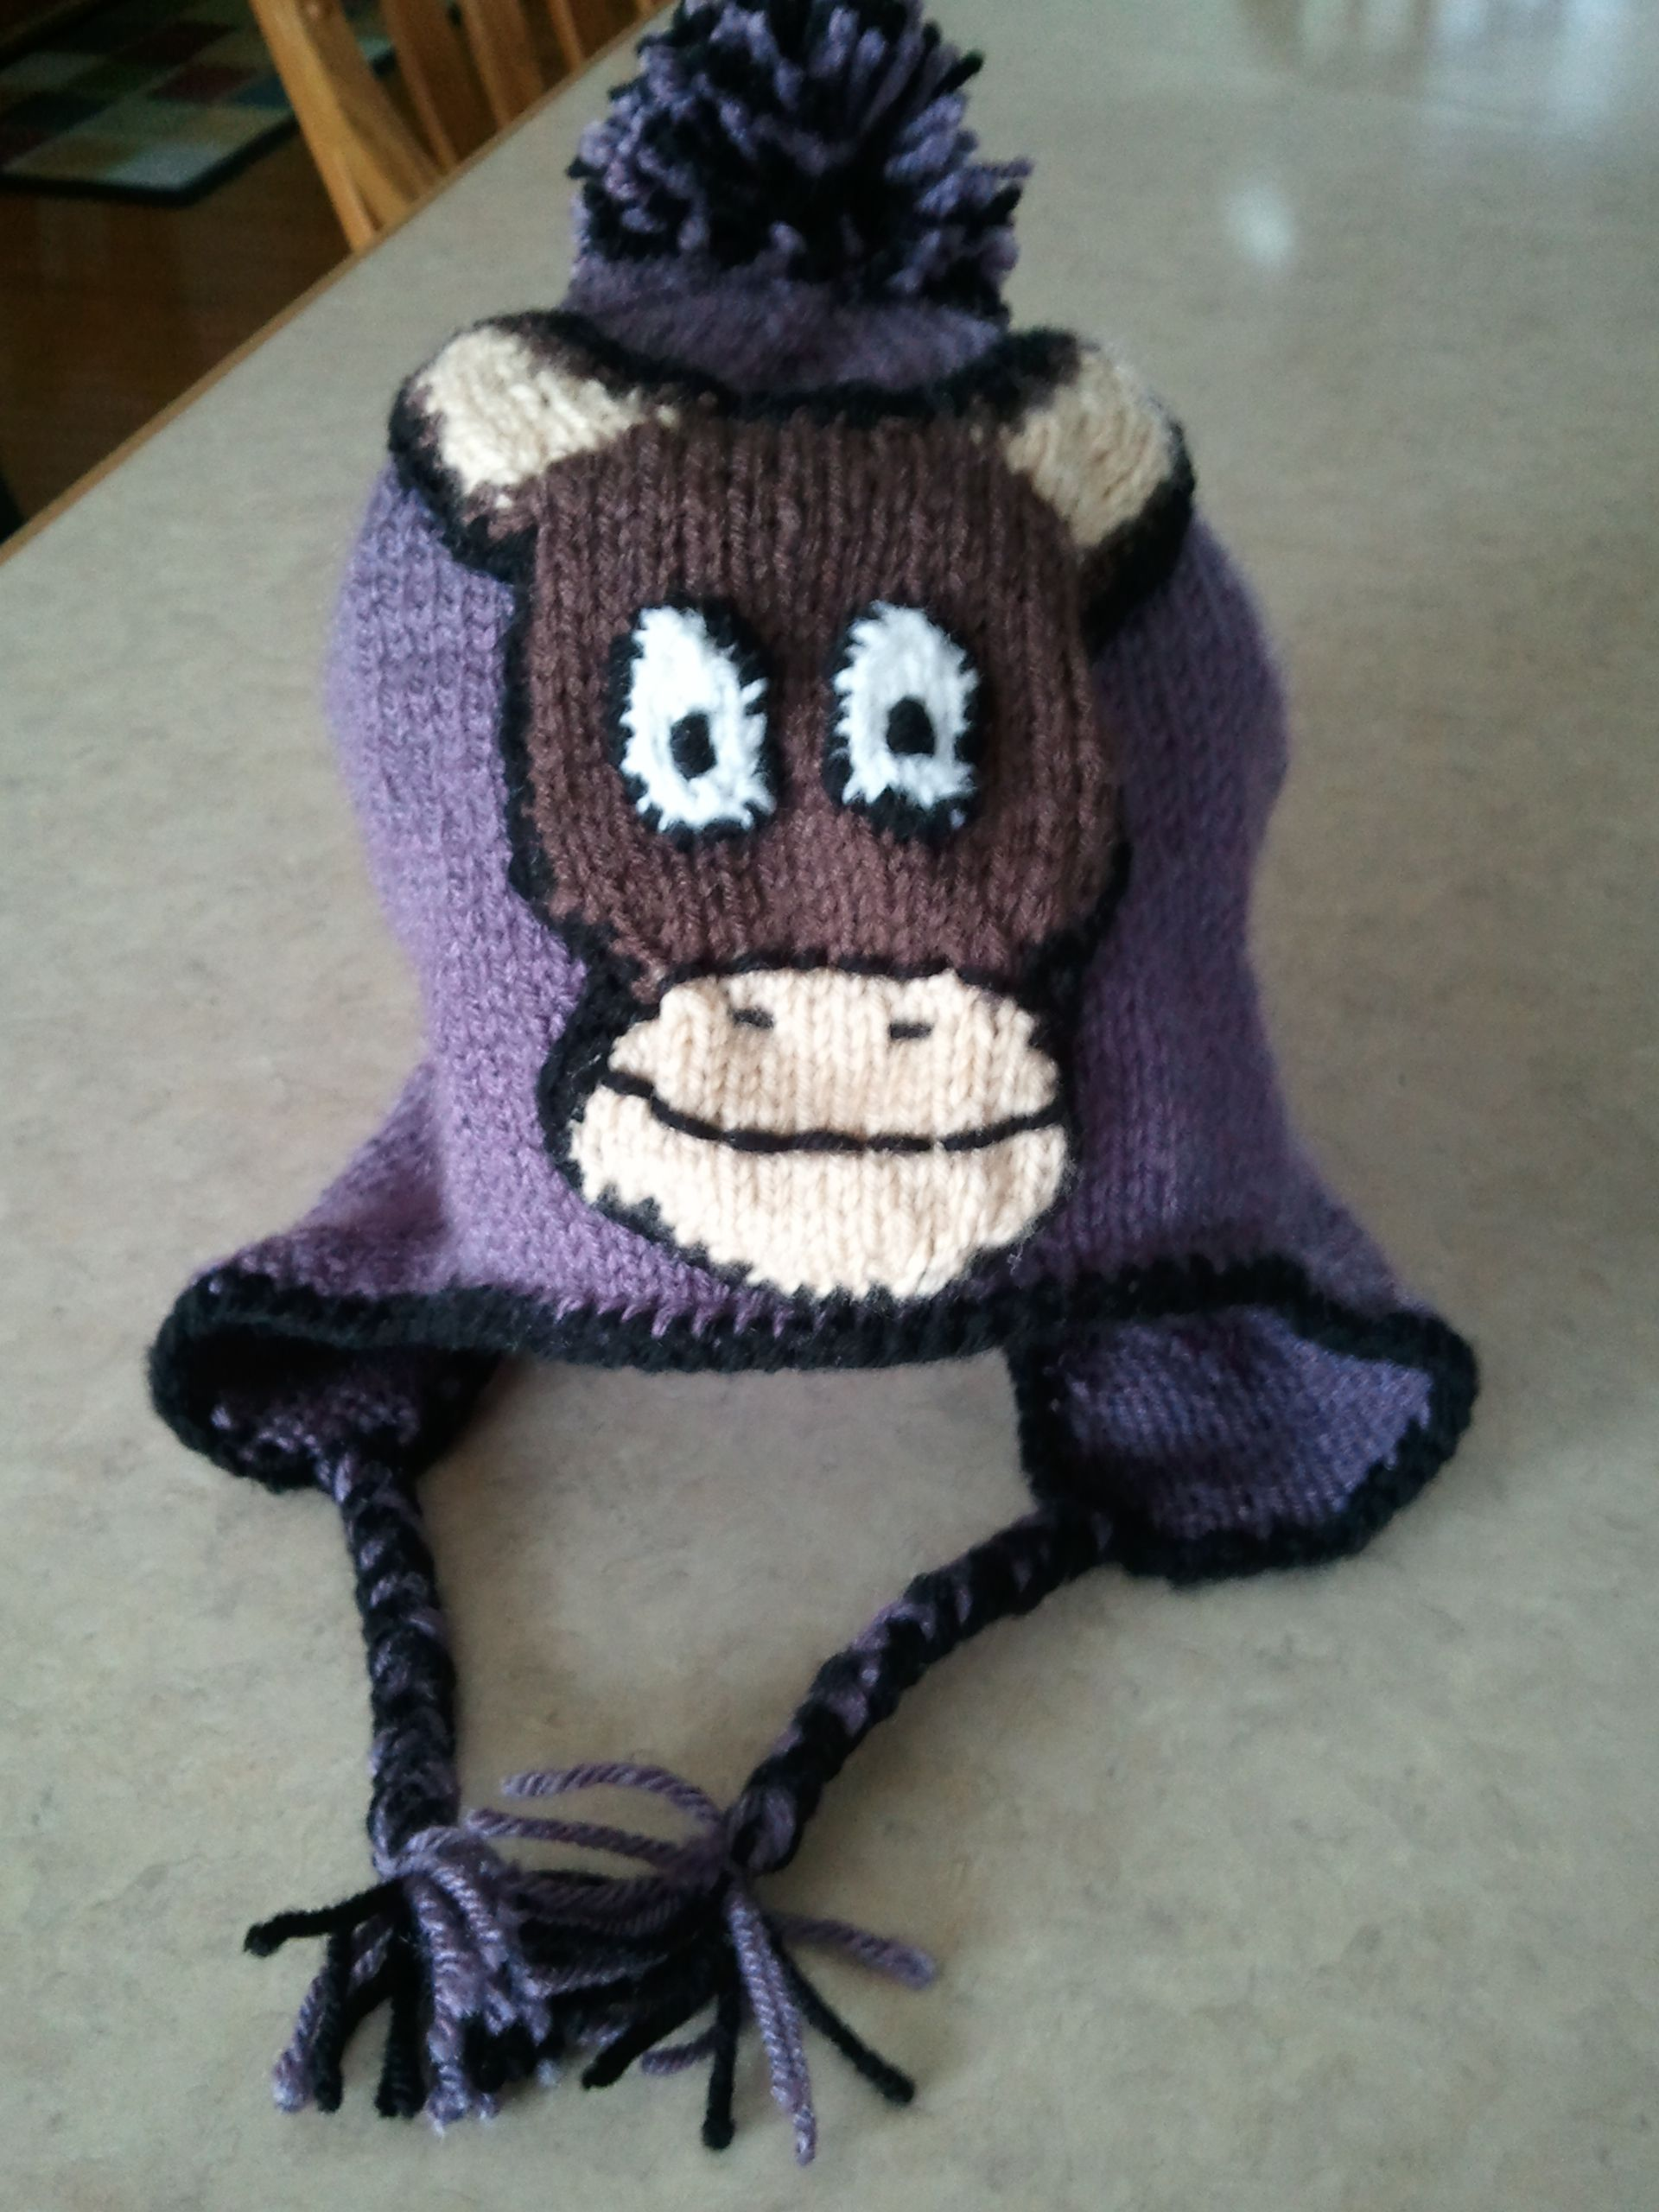 db21ffeaab6 Sock Monkey Hats for the Whole Family (pdf knitting pattern ...